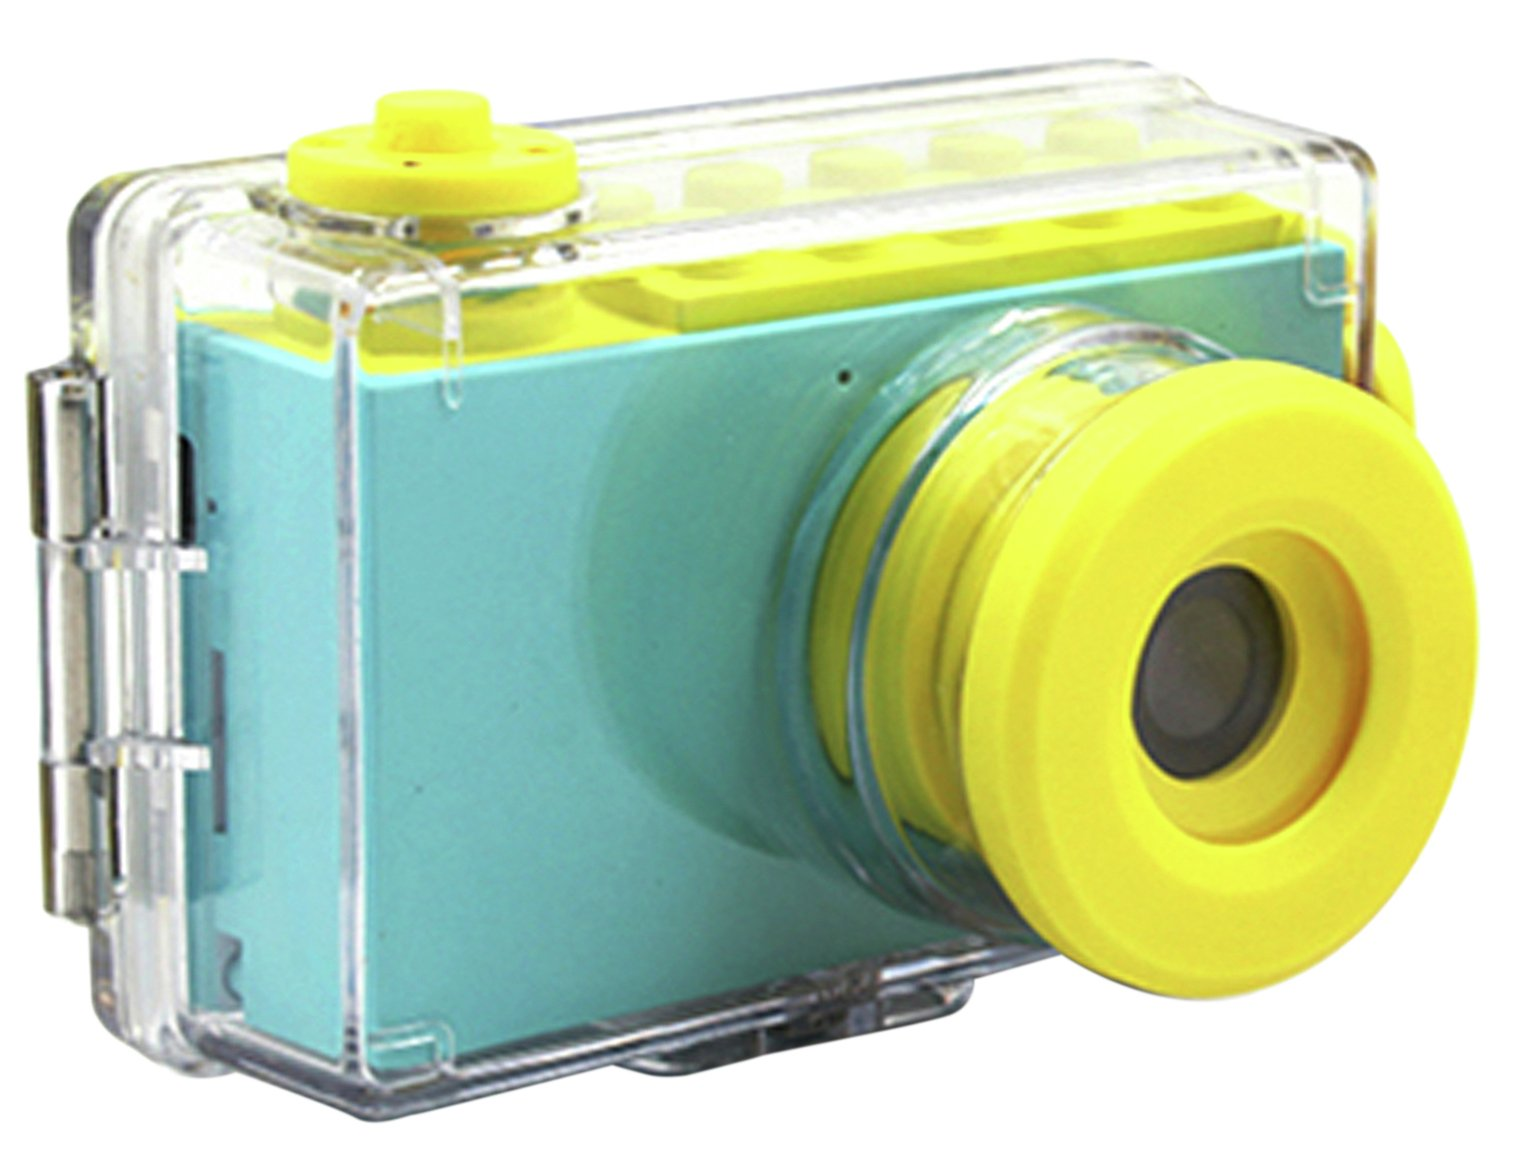 myFirst Camera with Waterproof Case - Blue